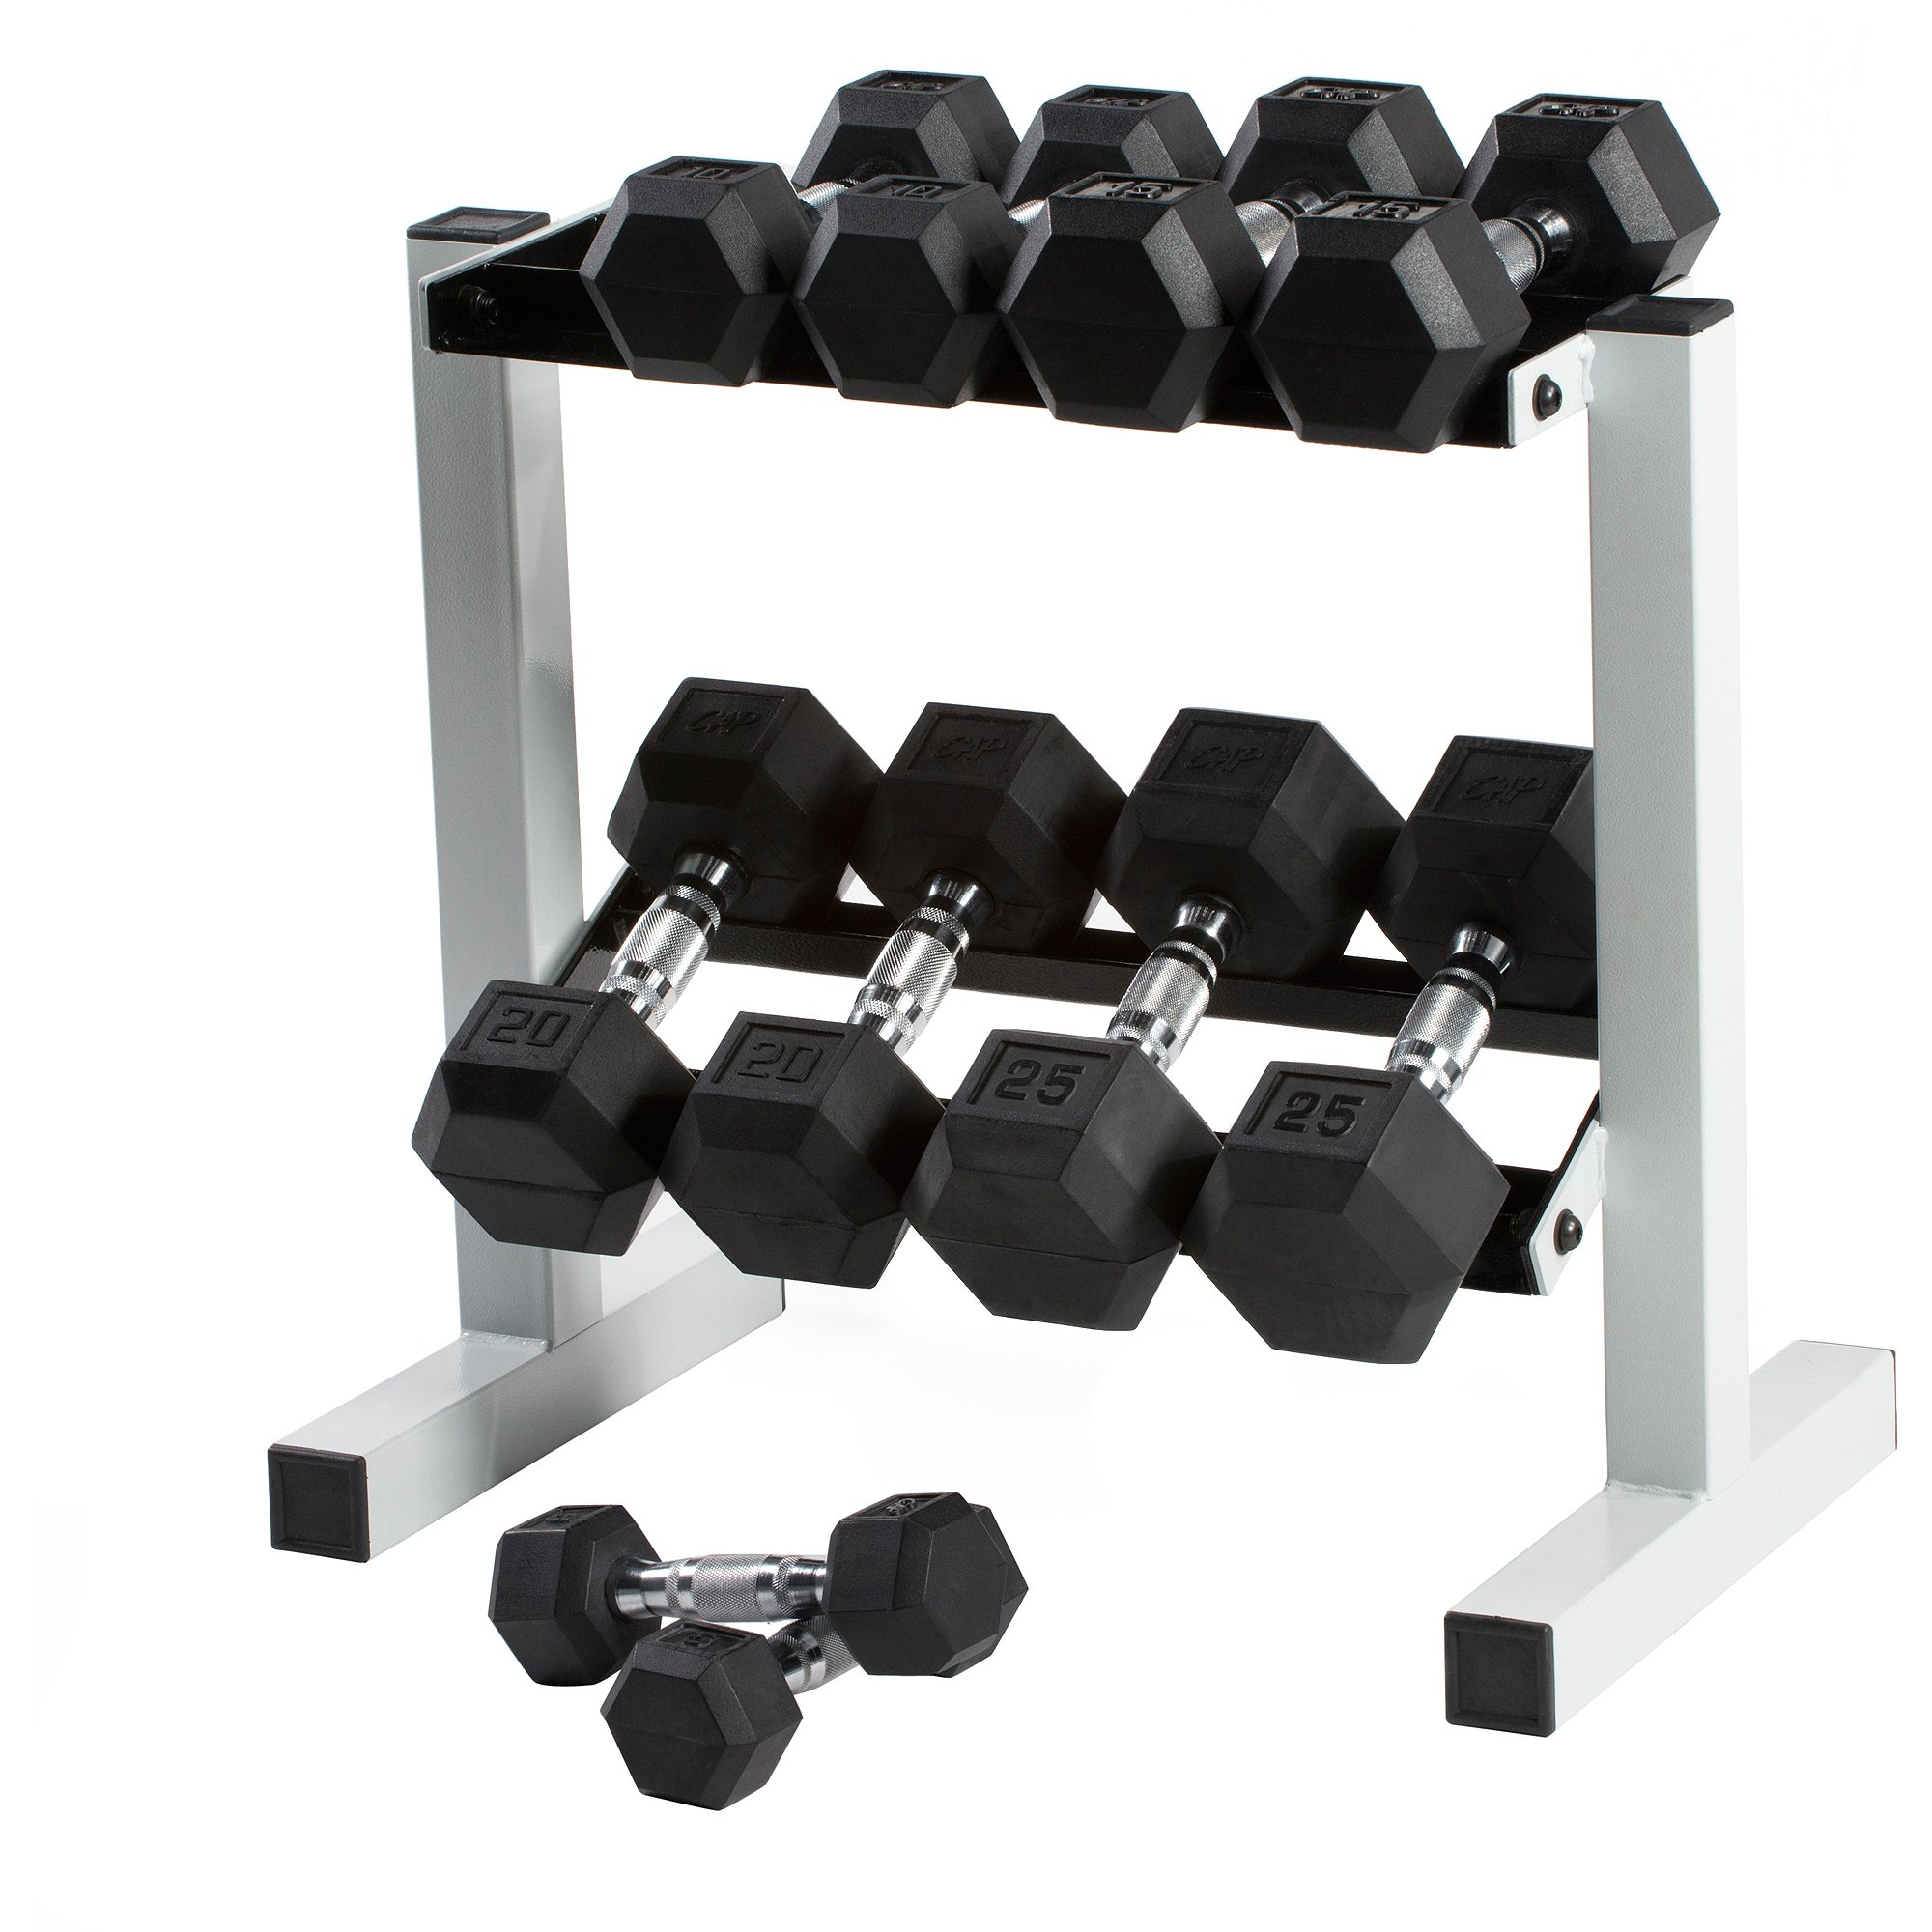 CAP Barbell Set of 2 Hex Rubber Dumbbell with Metal Handles, Pair of 2 Heavy Dumbbells Choose Weight (5lb, 8lb, 10lb, 15lb, 20 Lb, 25lb, 30lb, 35lb, 40lb, 50lb) (8lb x 2) by CAP Barbell (Image #2)